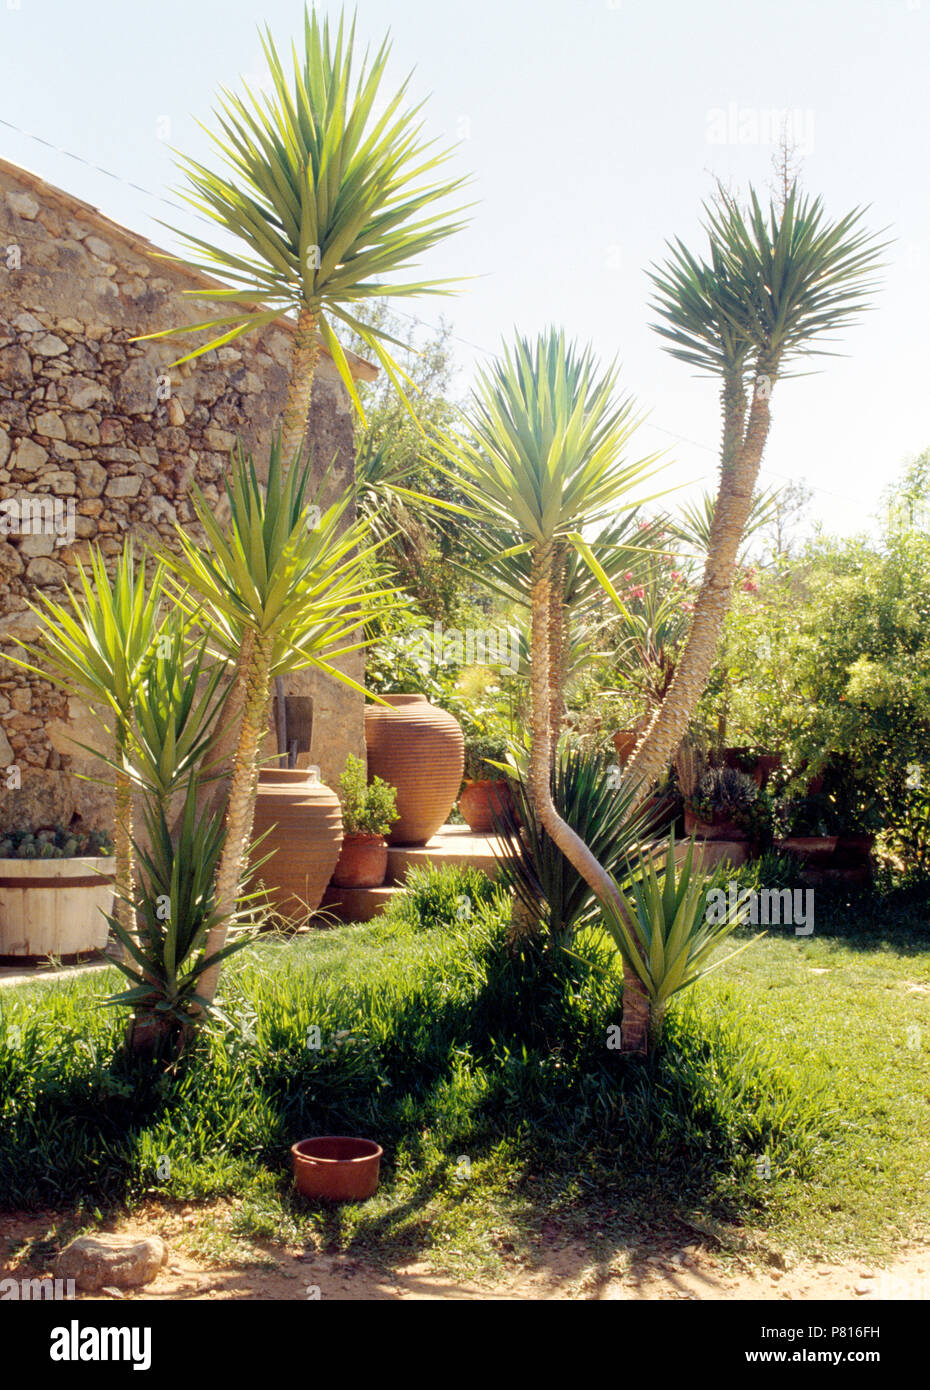 Dracaena Trees Growing Beside Patio With Large Terracotta Pithoi Pots In  Garden In Portugal